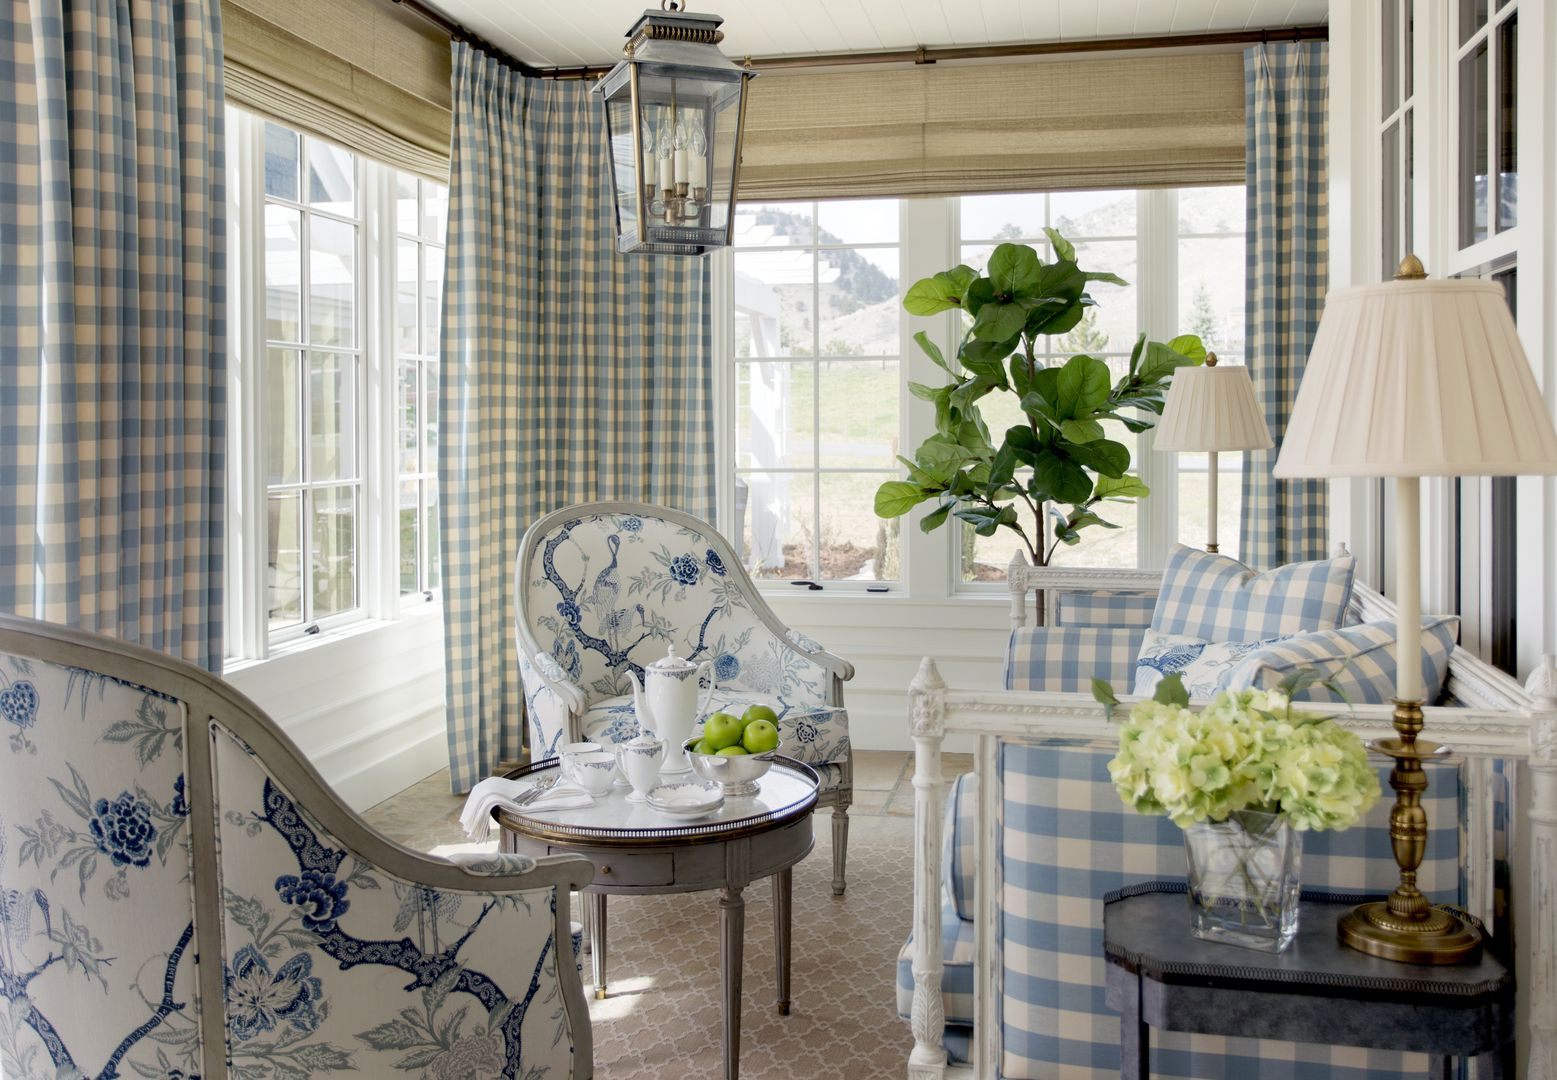 New Construction Of A Traditional Family Home With Classic Southern California Farmhouse Style Interior